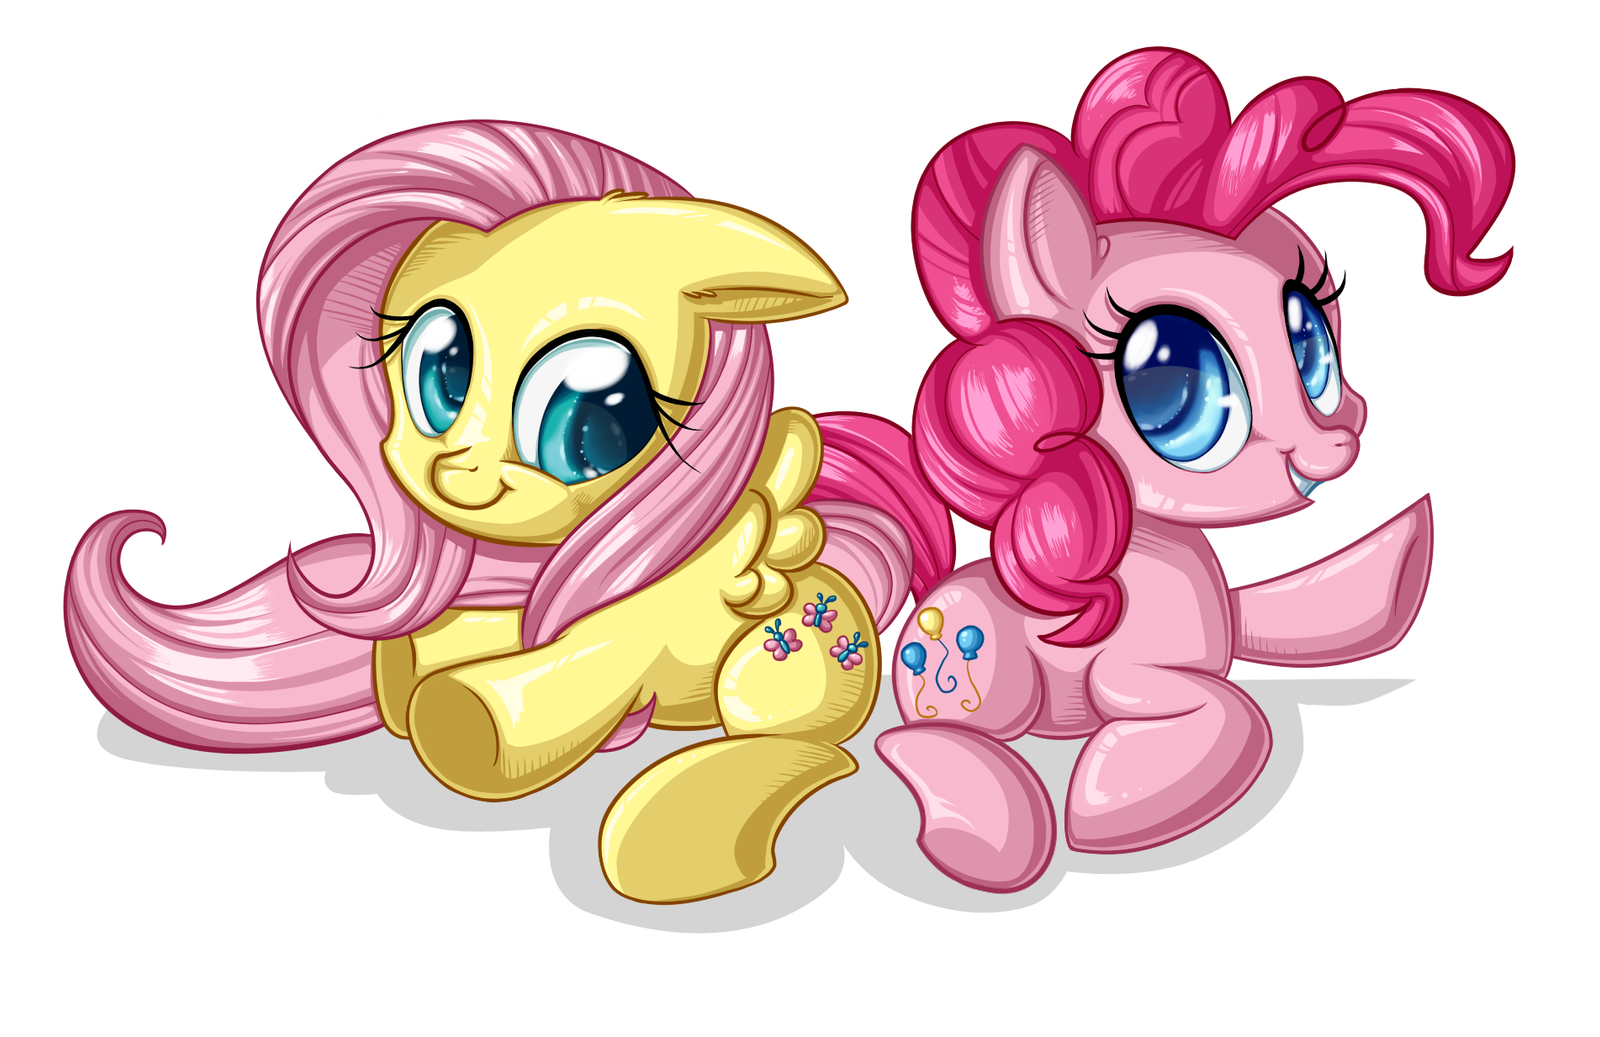 Chibis Fluttershy and Pinkie Pie :: YaY! by Pauuh